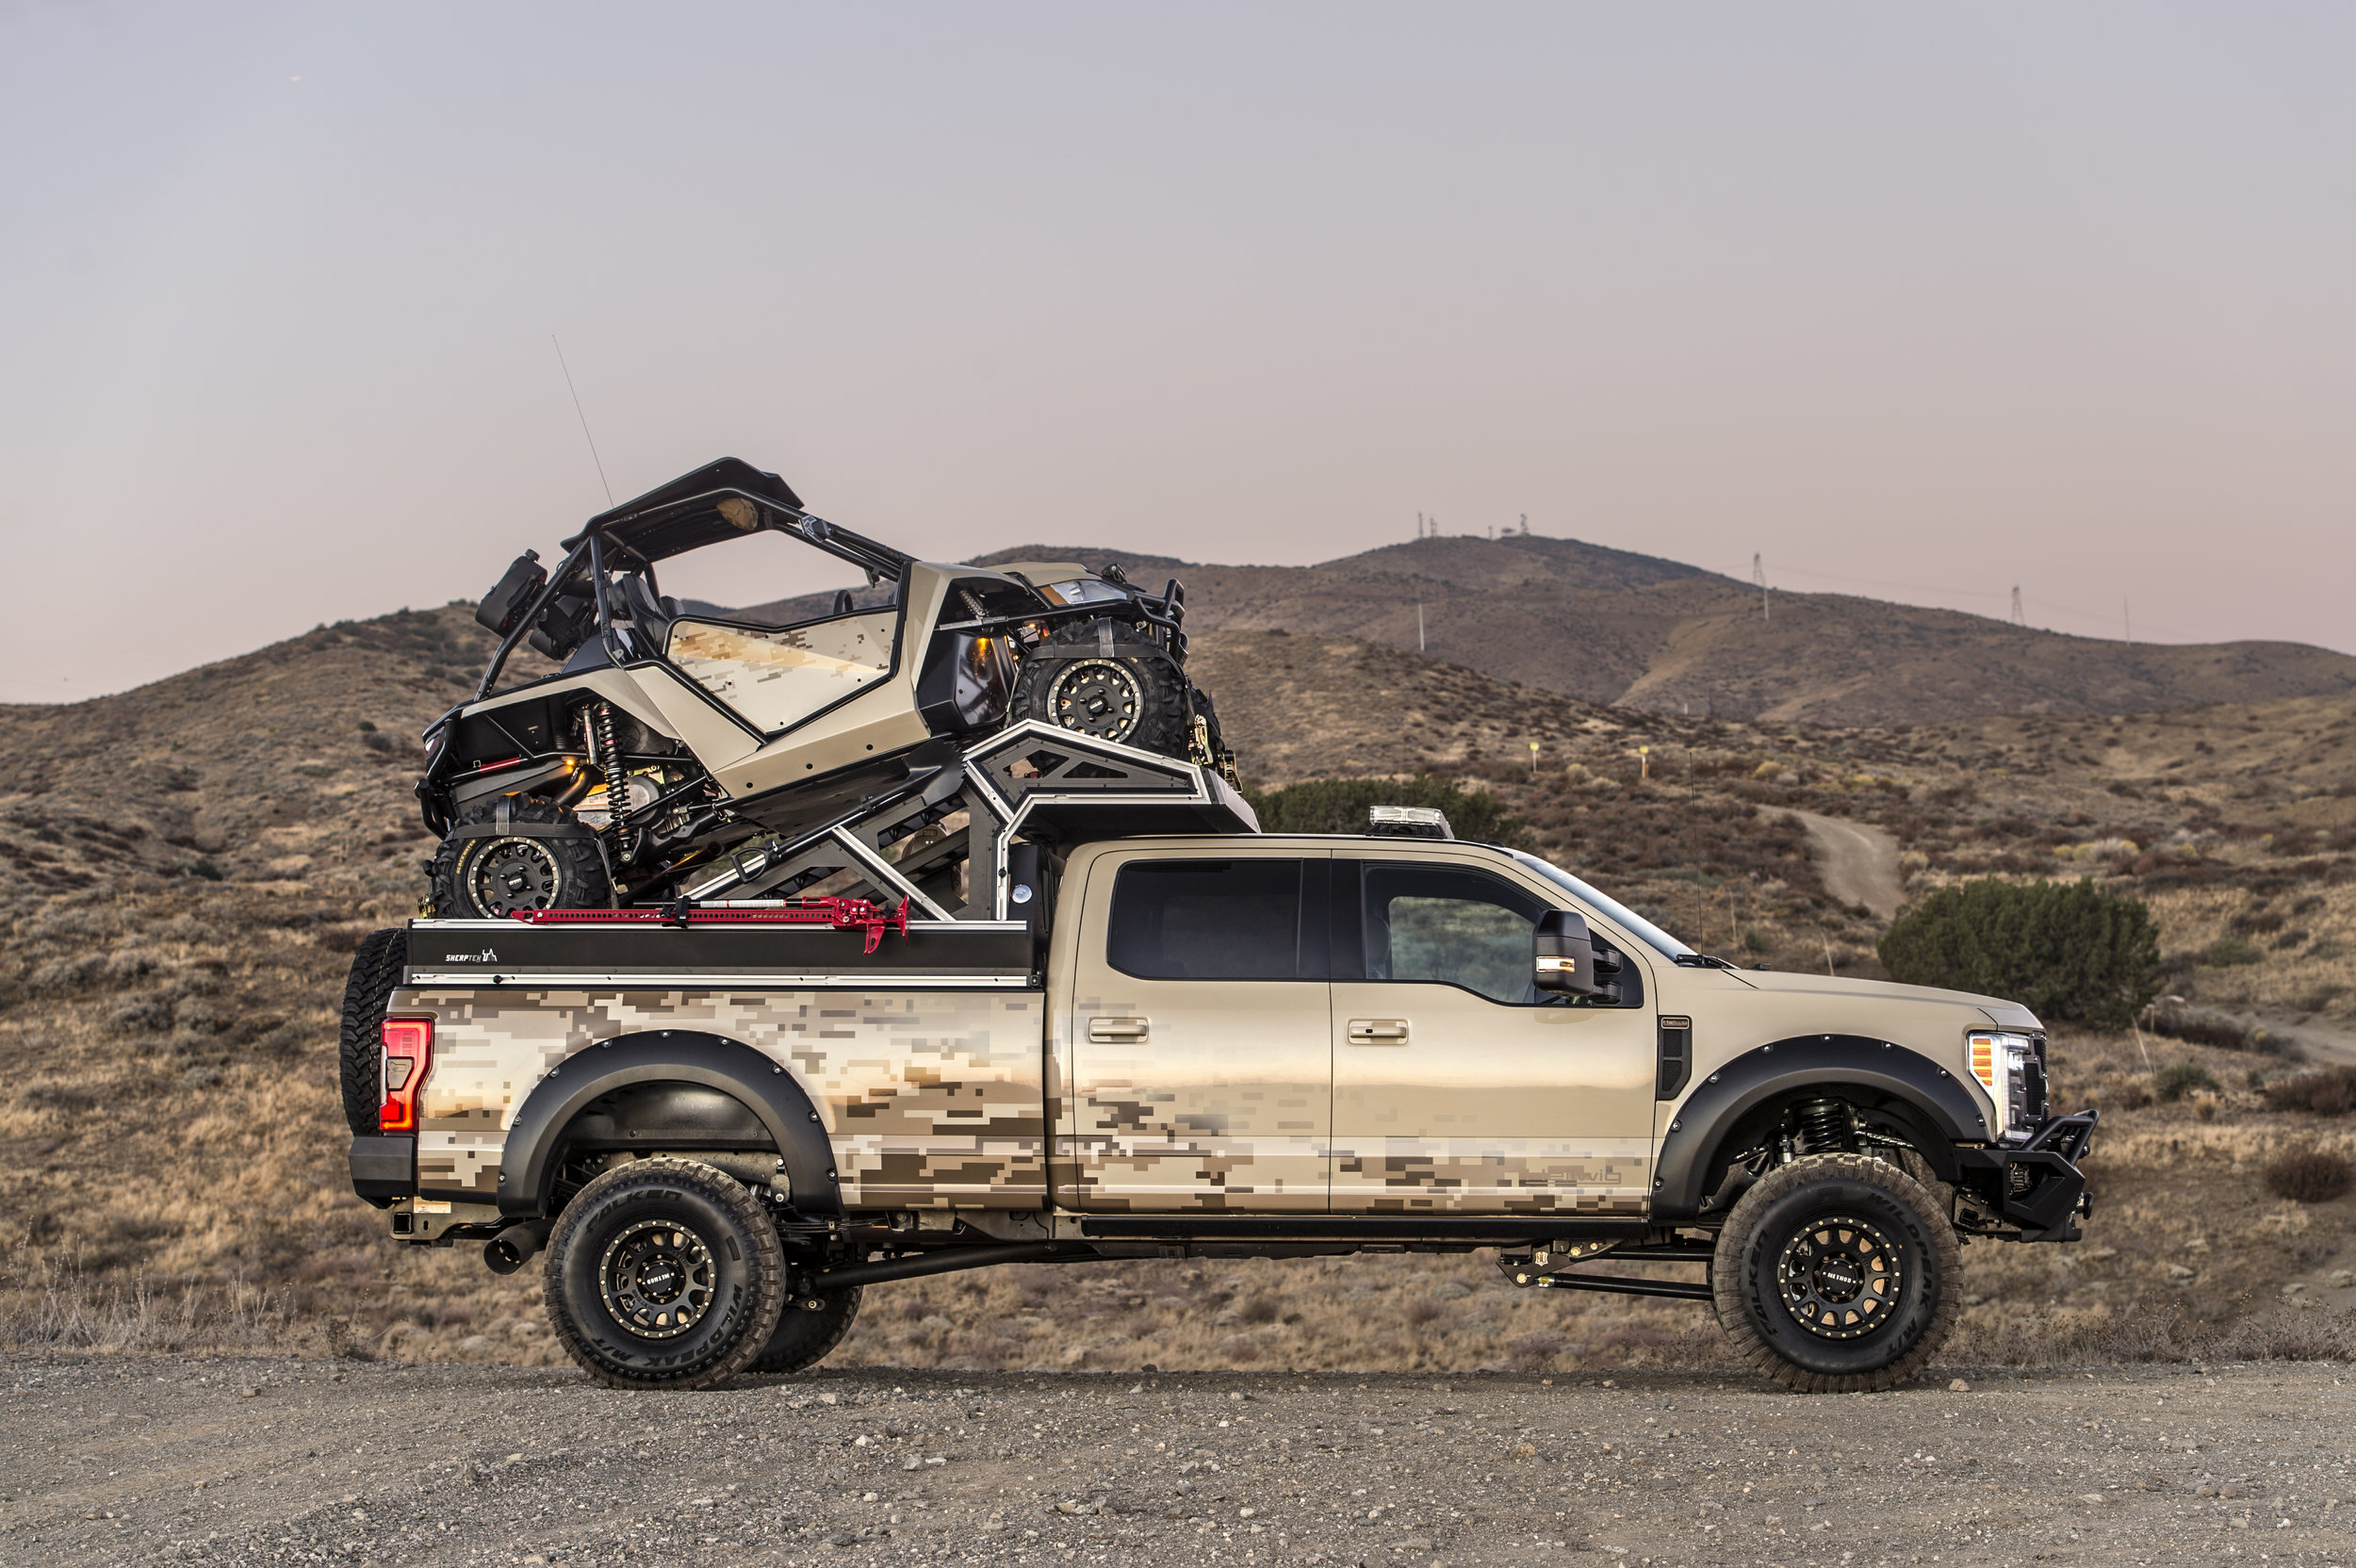 Toy hauler as accessory to modular truck bed replacement system with upper deck perfect for rooftop tents, canopies and more.